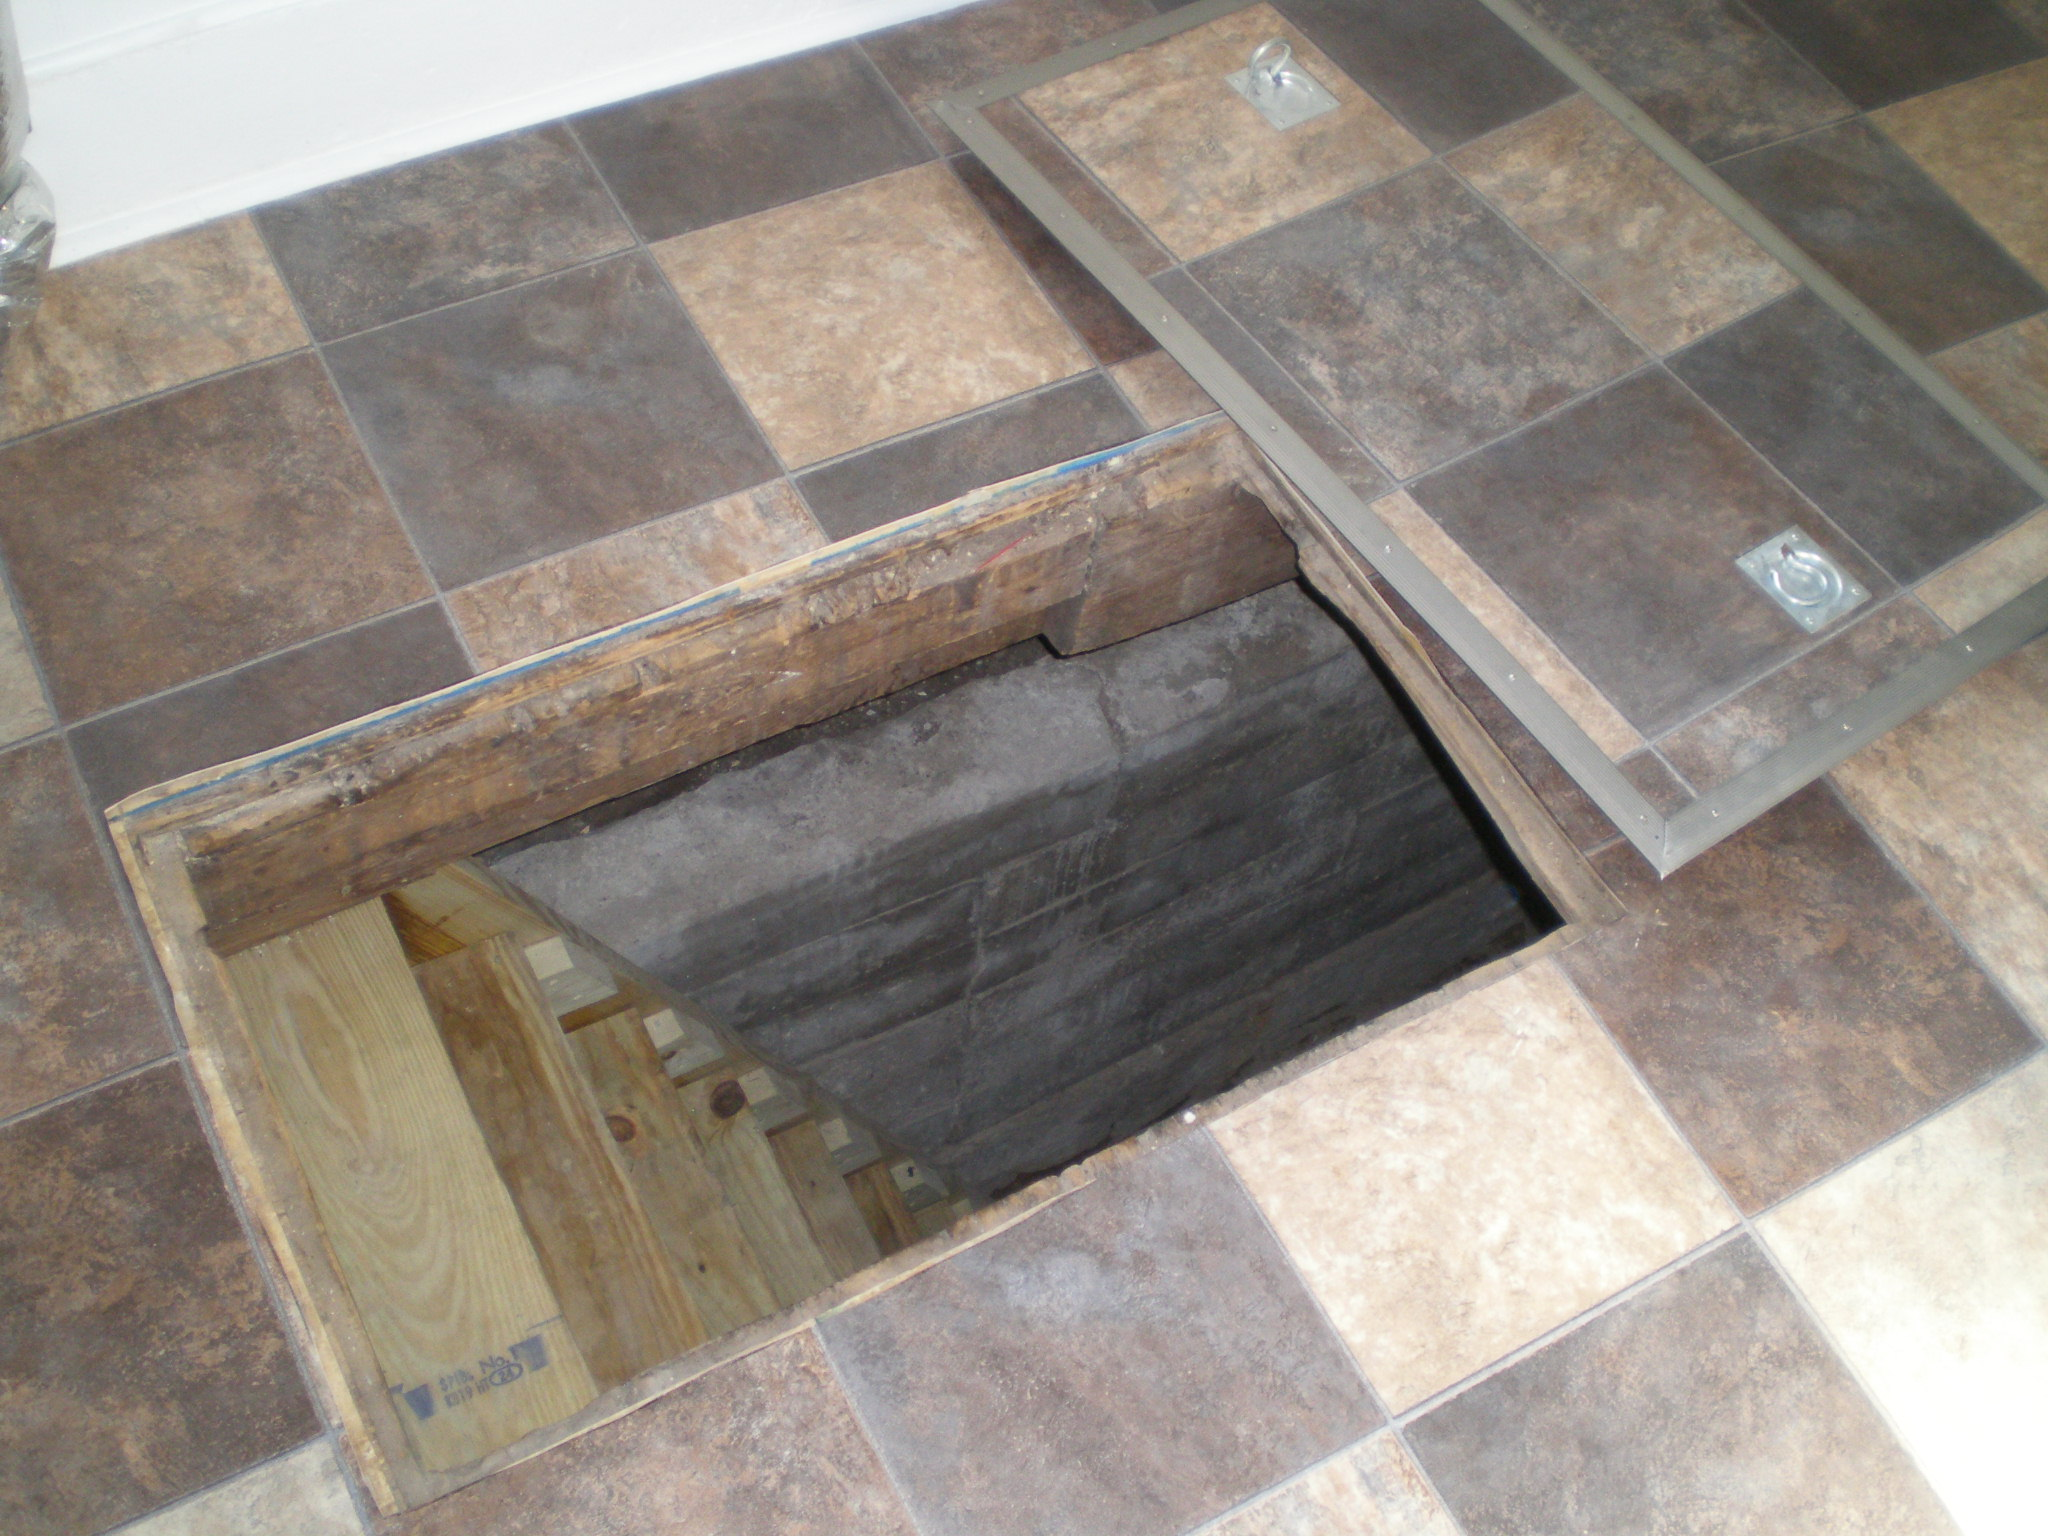 ... Exterior Crawl Space Access Door, Image Source: Pinterest.com. This  Radon Test Is Useless